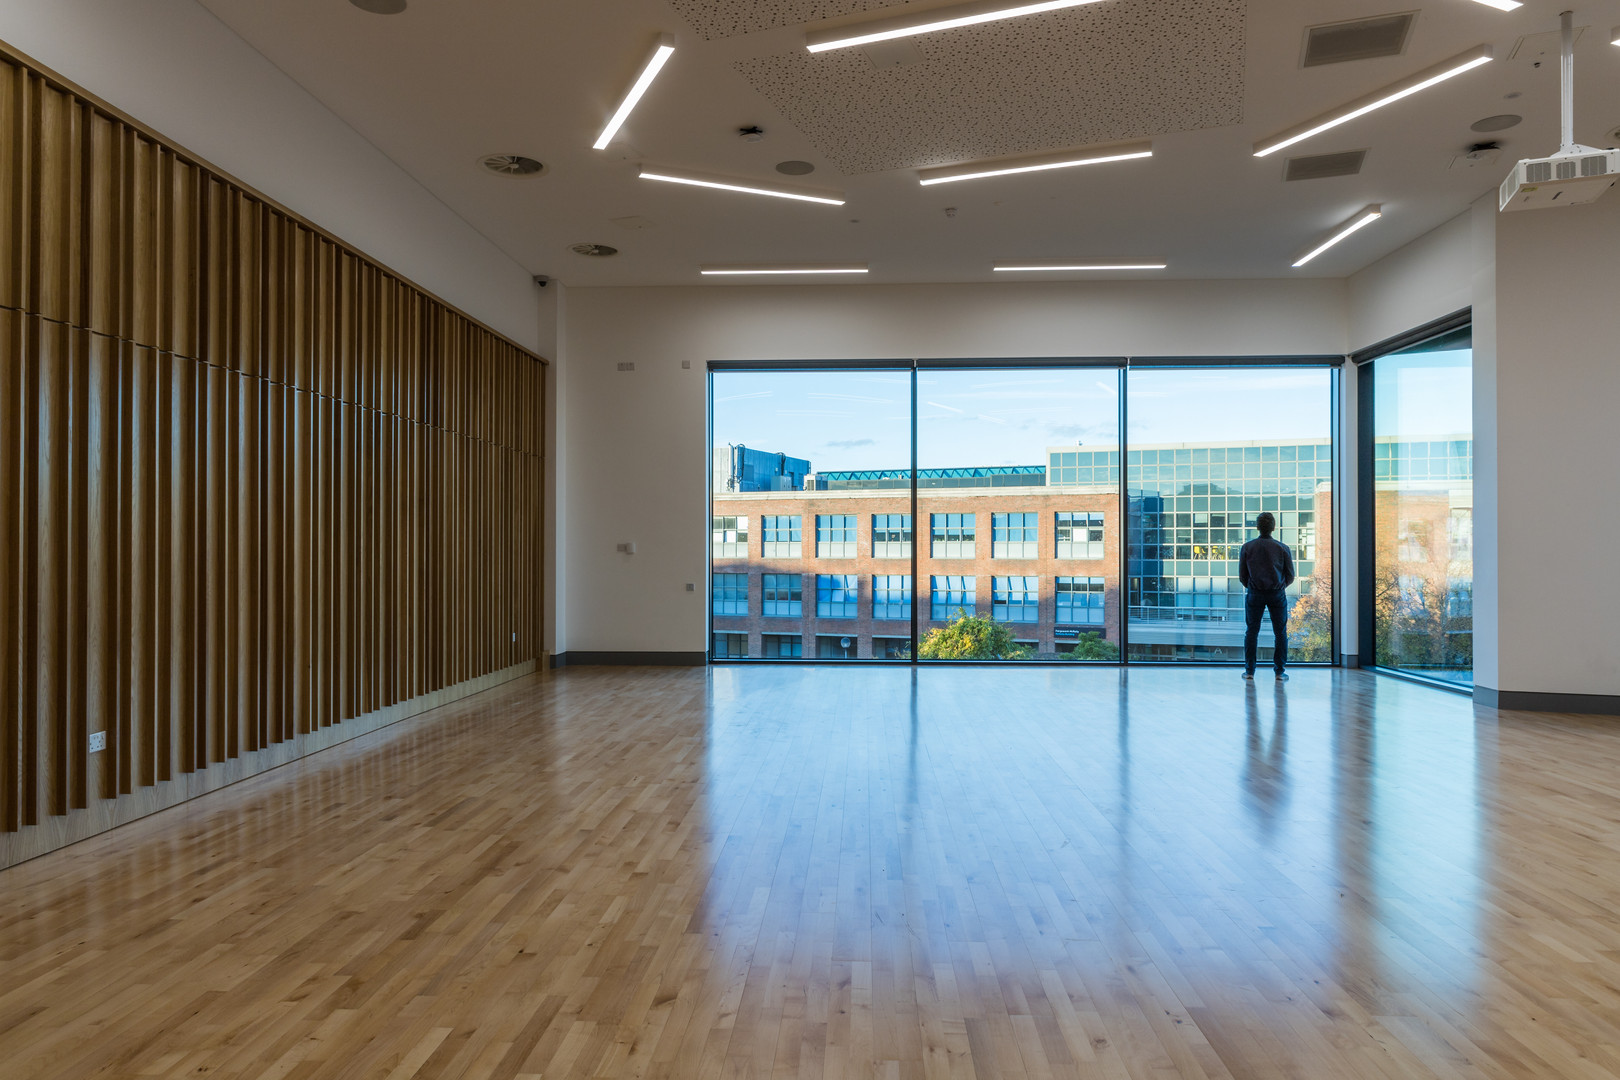 Event room with timber floor, timber soundproof panelling and large window Student Hub in DCU, Dublin